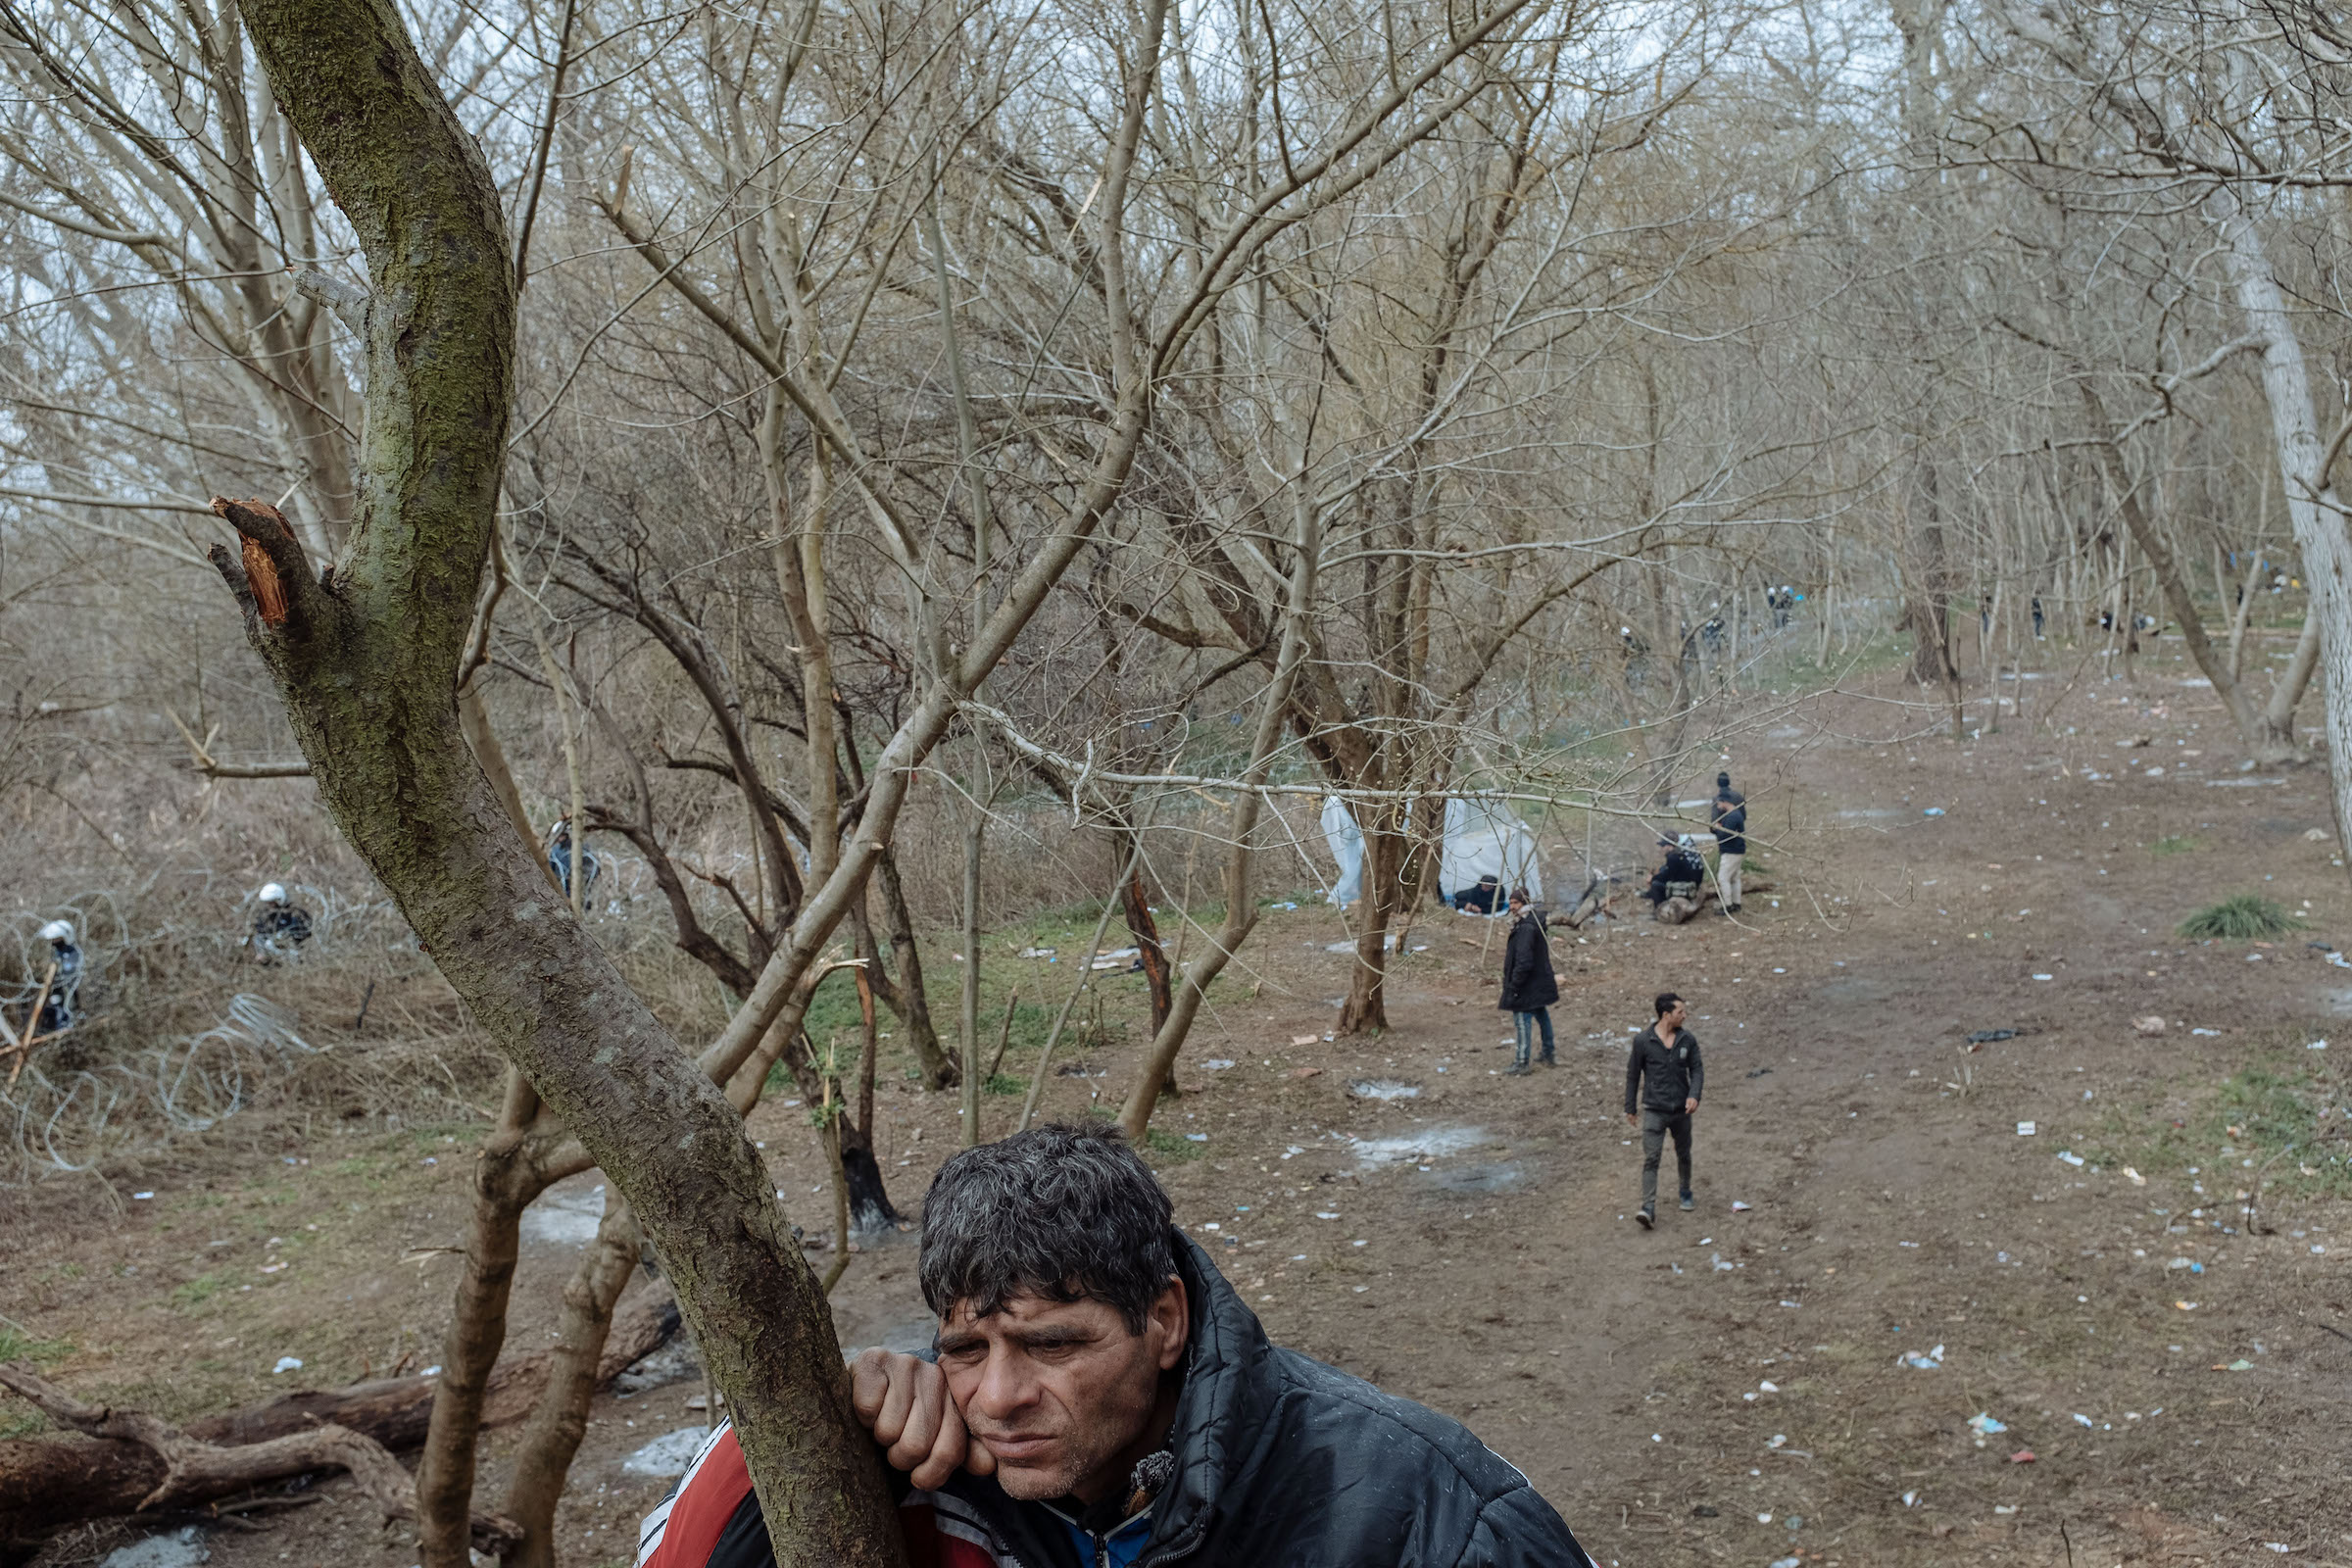 Muhammed, who fled Syria three years ago and was living in the Turkish port city of Mersin, rests against a tree.